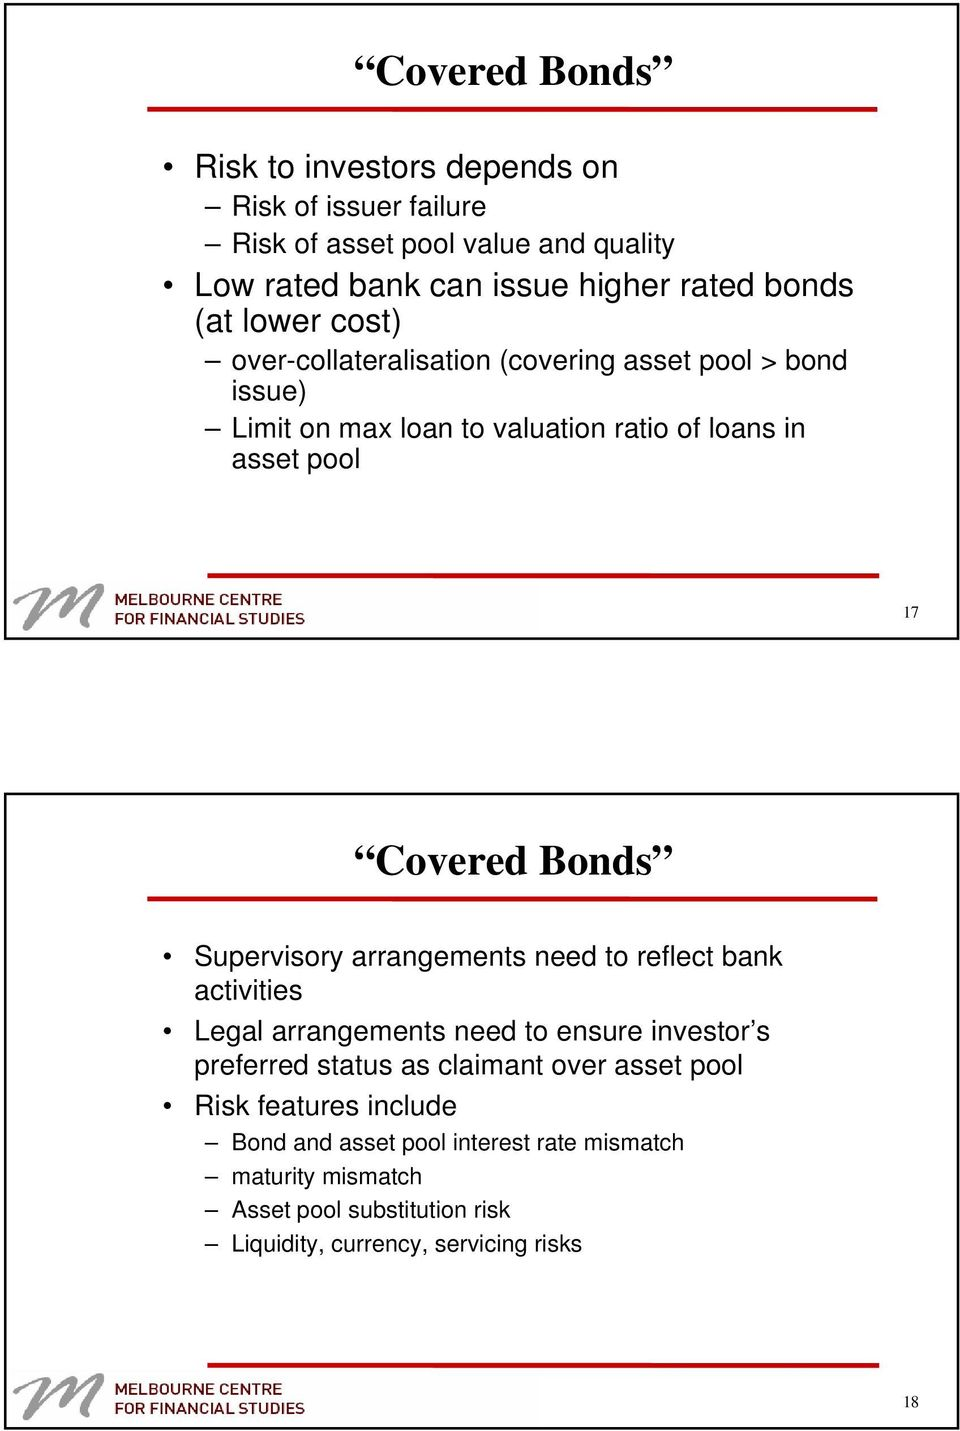 Bonds Supervisory arrangements need to reflect bank activities Legal arrangements need to ensure investor s preferred status as claimant over asset